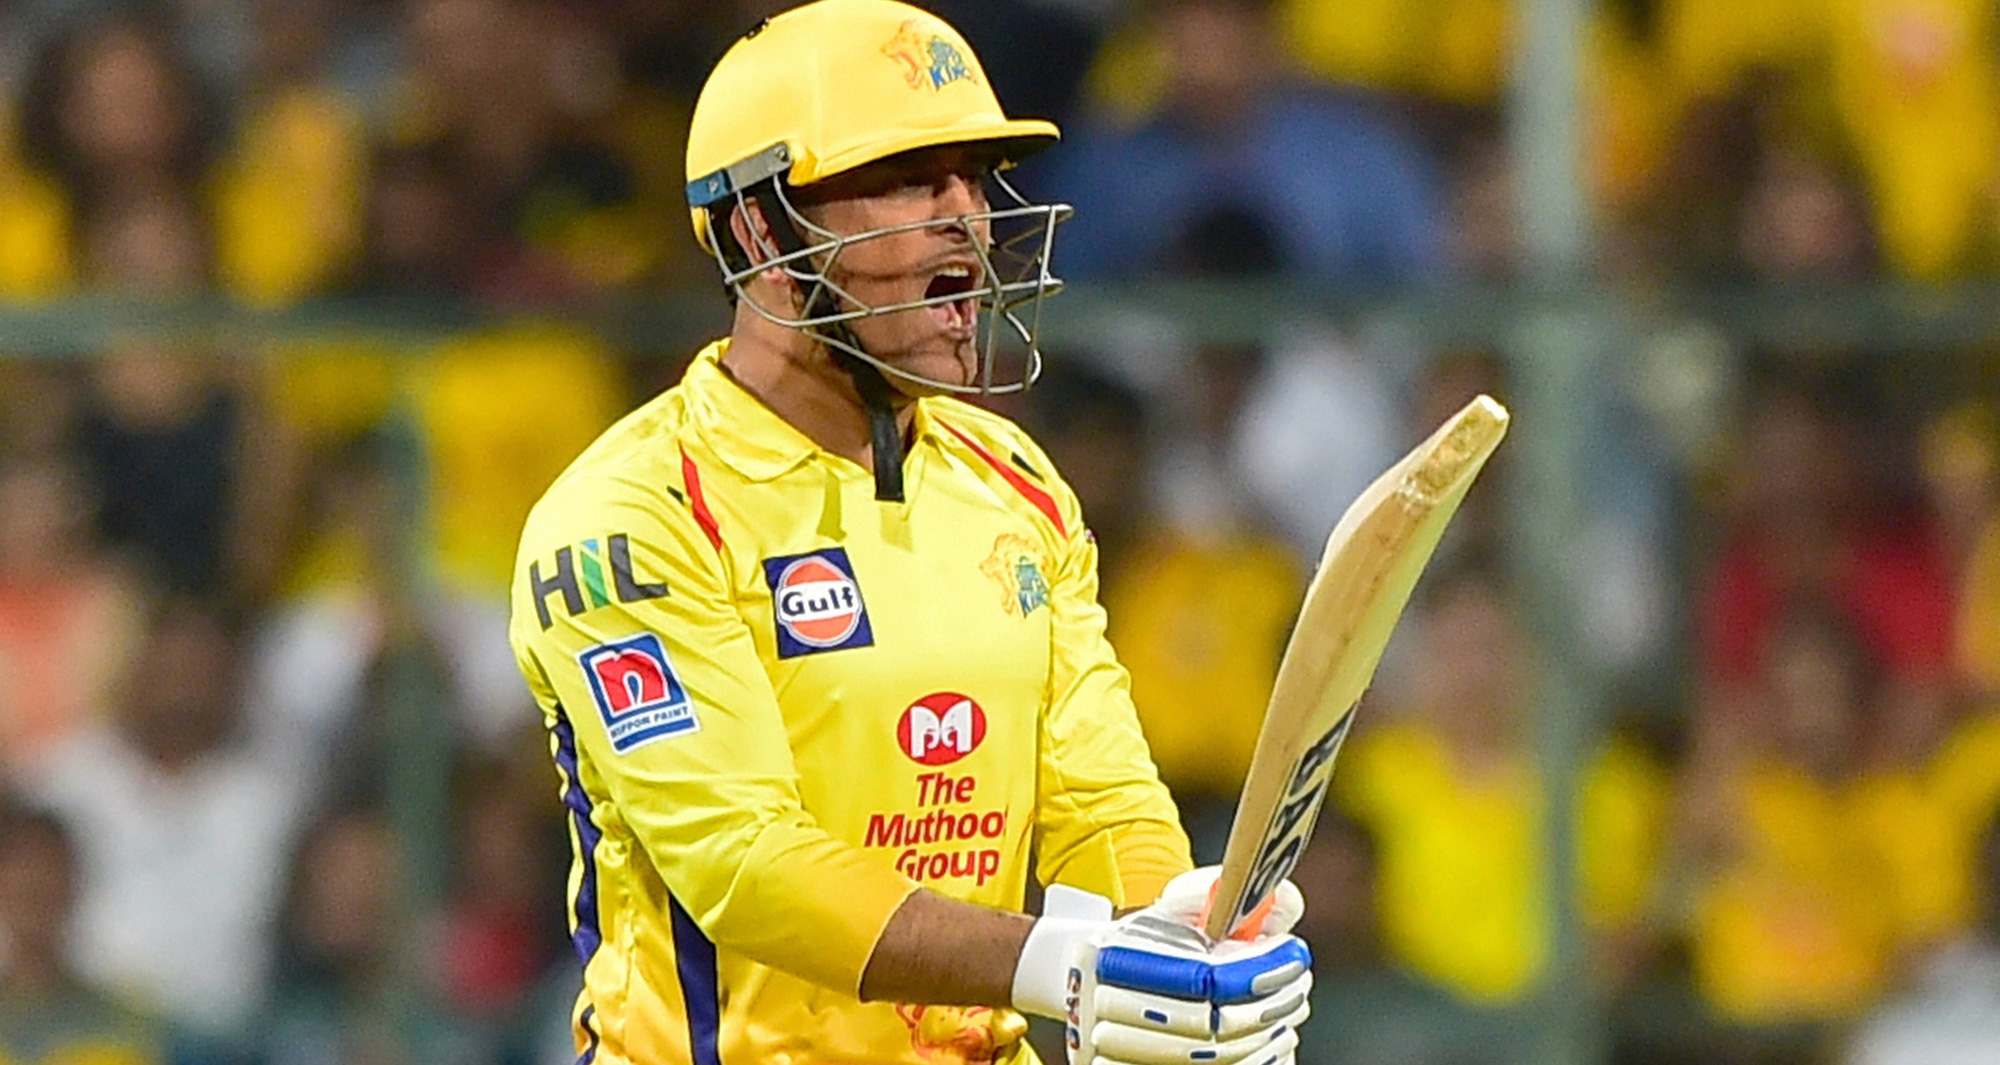 MS Dhoni reacts during the Indian Premier League 2019 cricket match between Royal Challengers Bangalore (RCB) and Chennai Super Kings (CSK)   at Chinnaswamy Stadium in Bengaluru on Sunday, April 21, 2019.